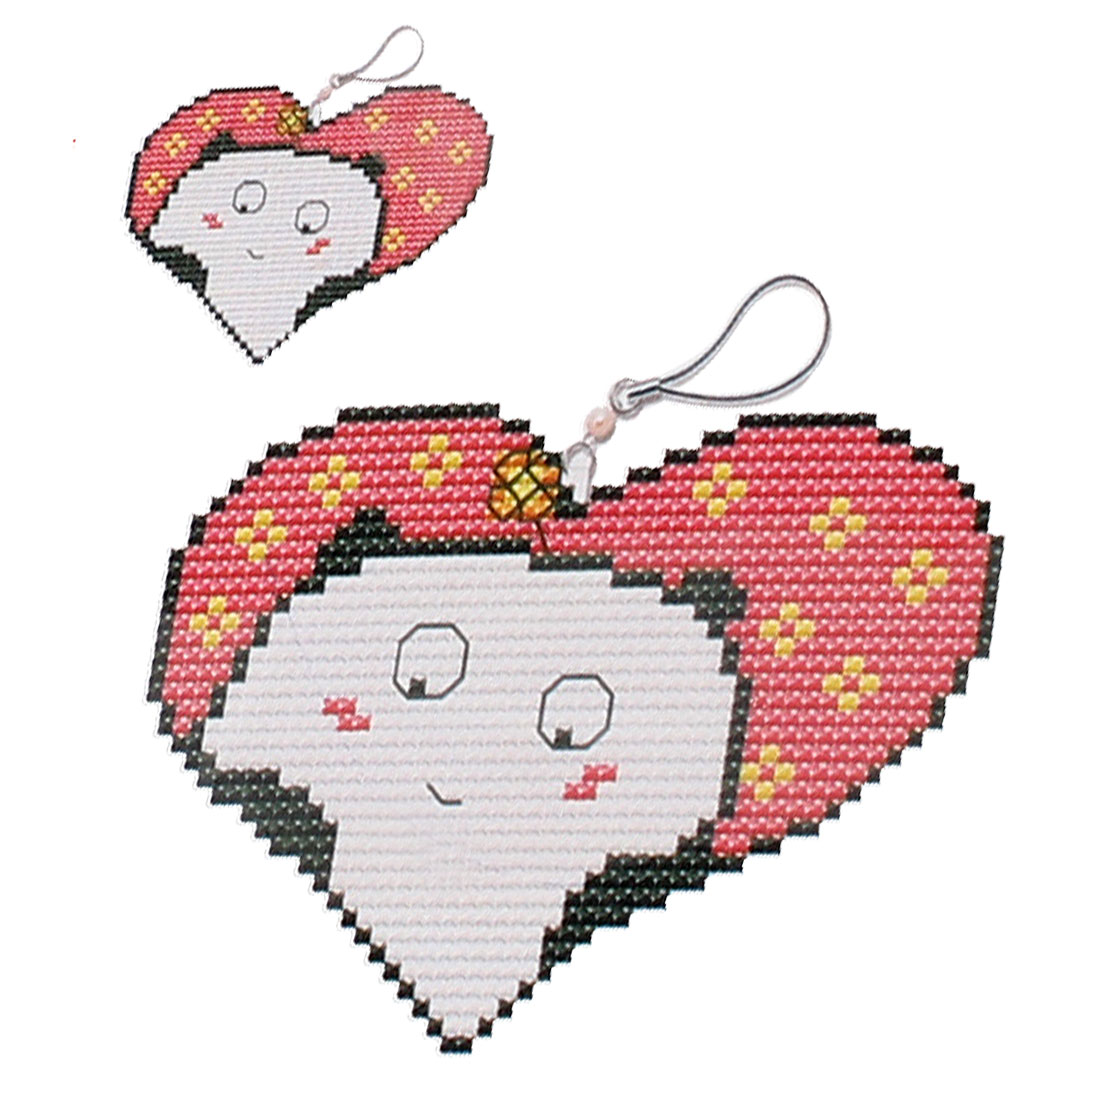 Colorful Heart Printed Handbag Pendant Counted Cross Stitch Counted Kit Set